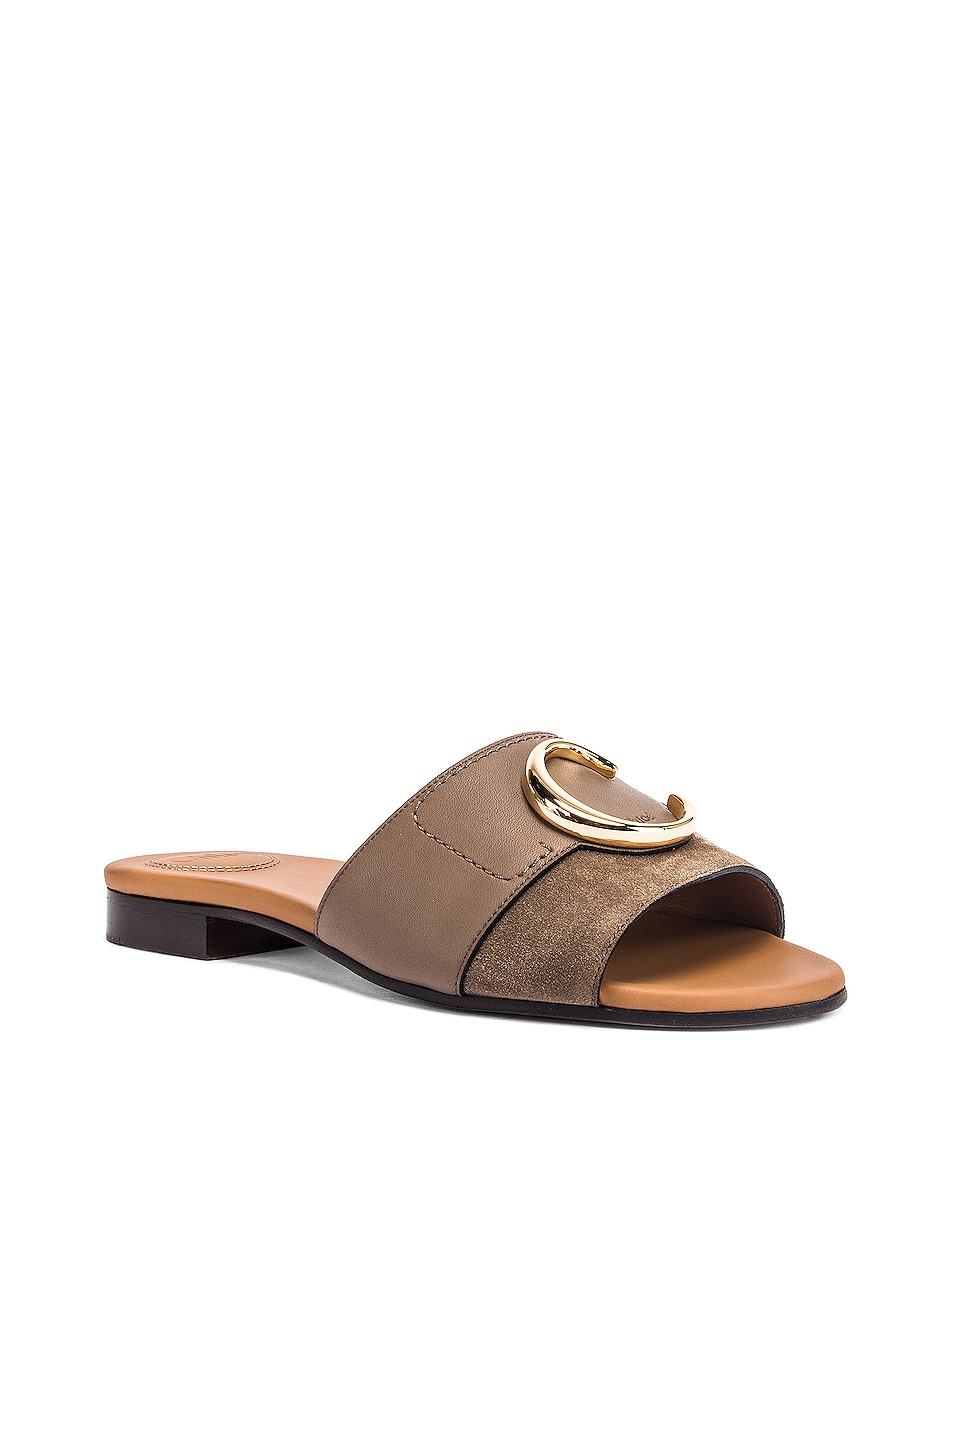 Image 3 of Chloe Flat Sandals in Motty Grey